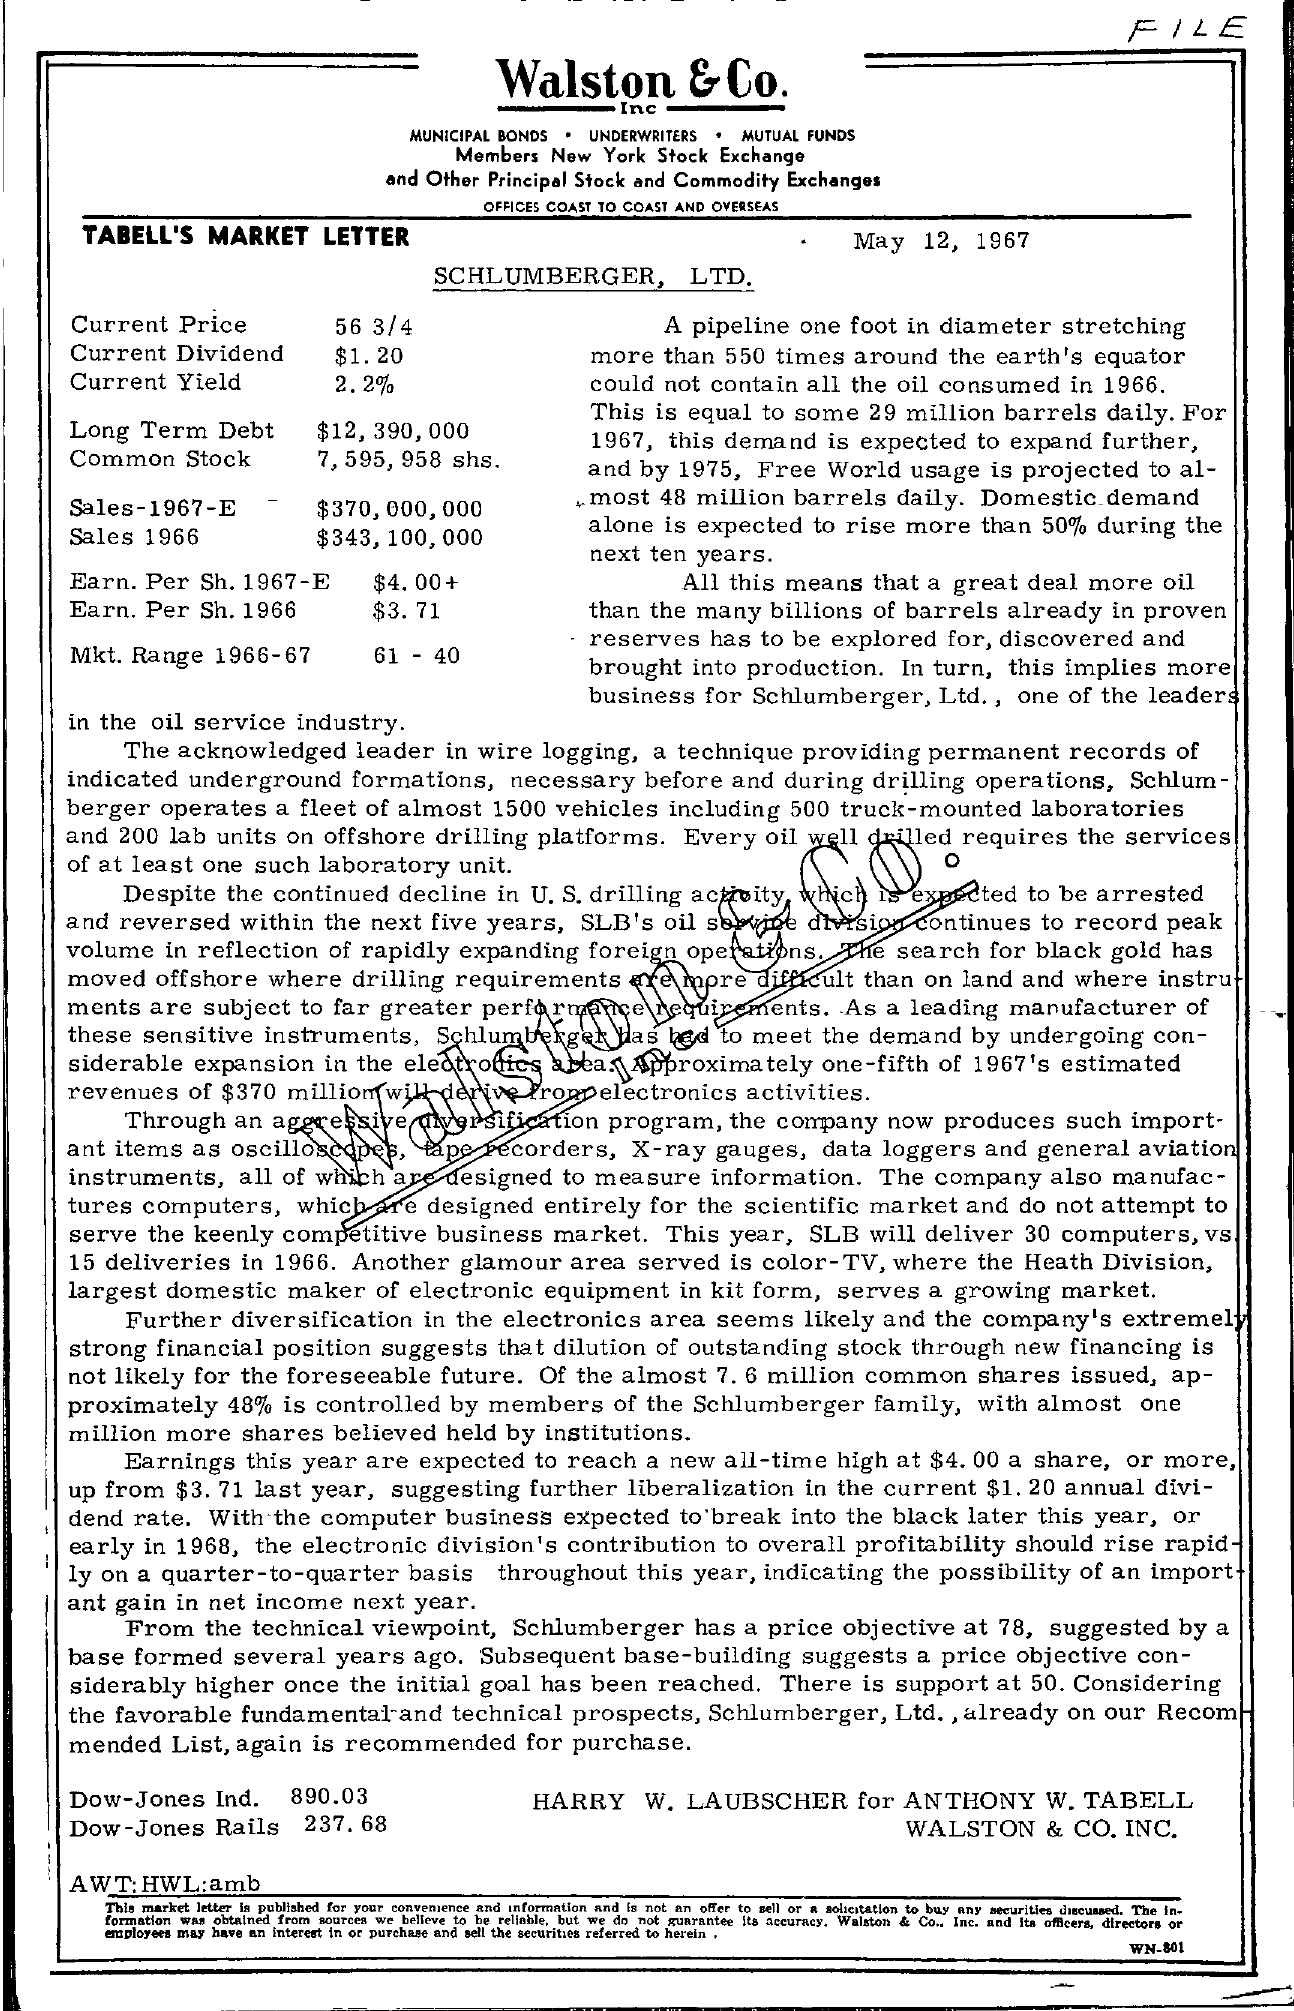 Tabell's Market Letter - May 12, 1967